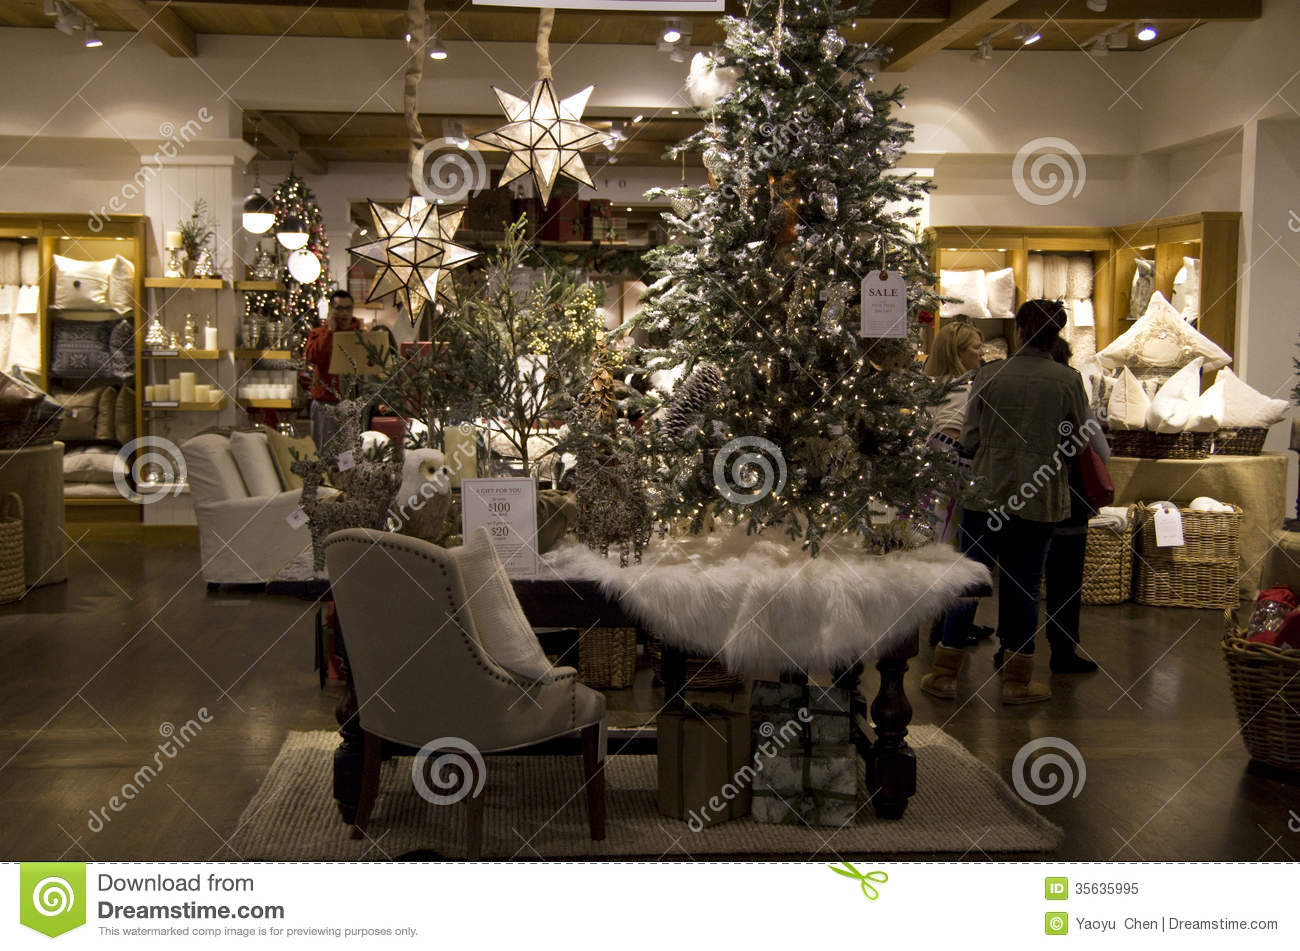 Christmas trees home goods decor store editorial image for Decoration goods